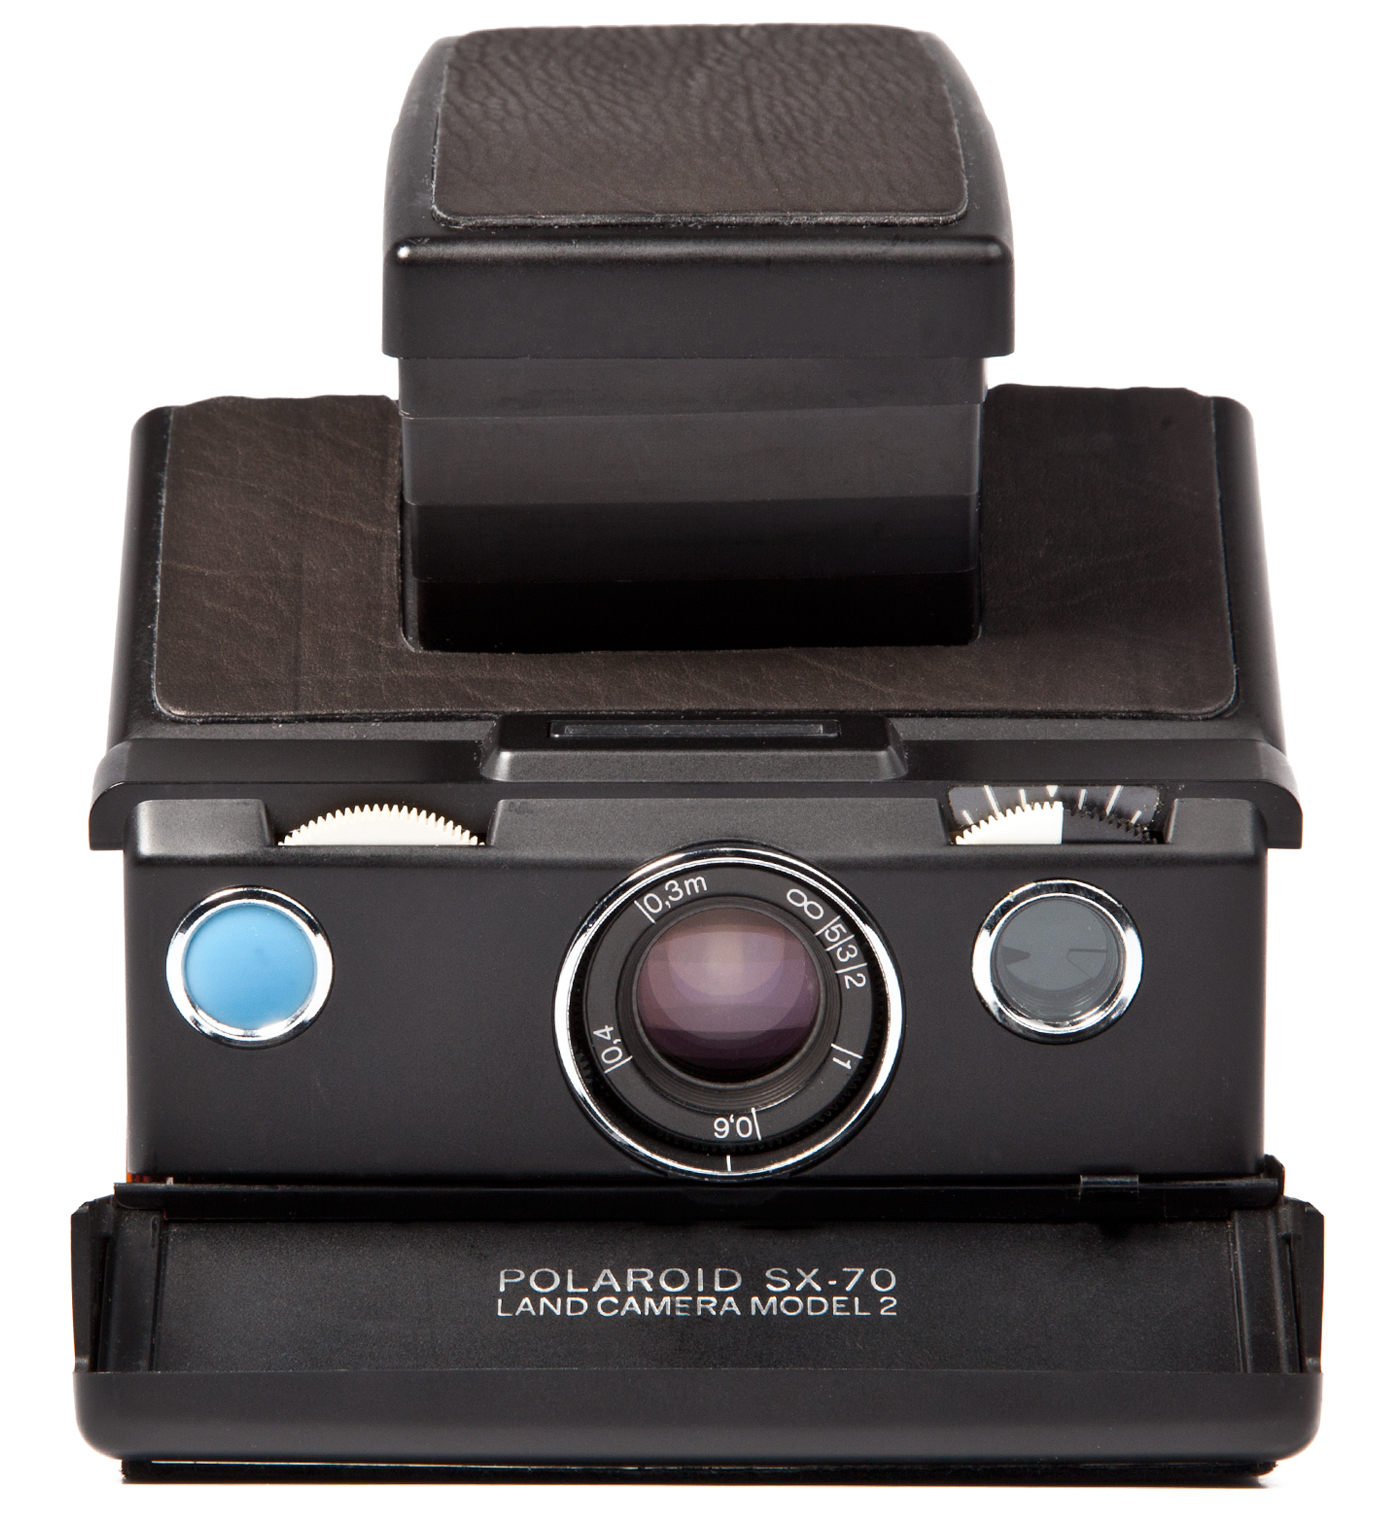 IMPOSSIBLE Black Body Refurbished Vintage Polaroid SX-70 Camera